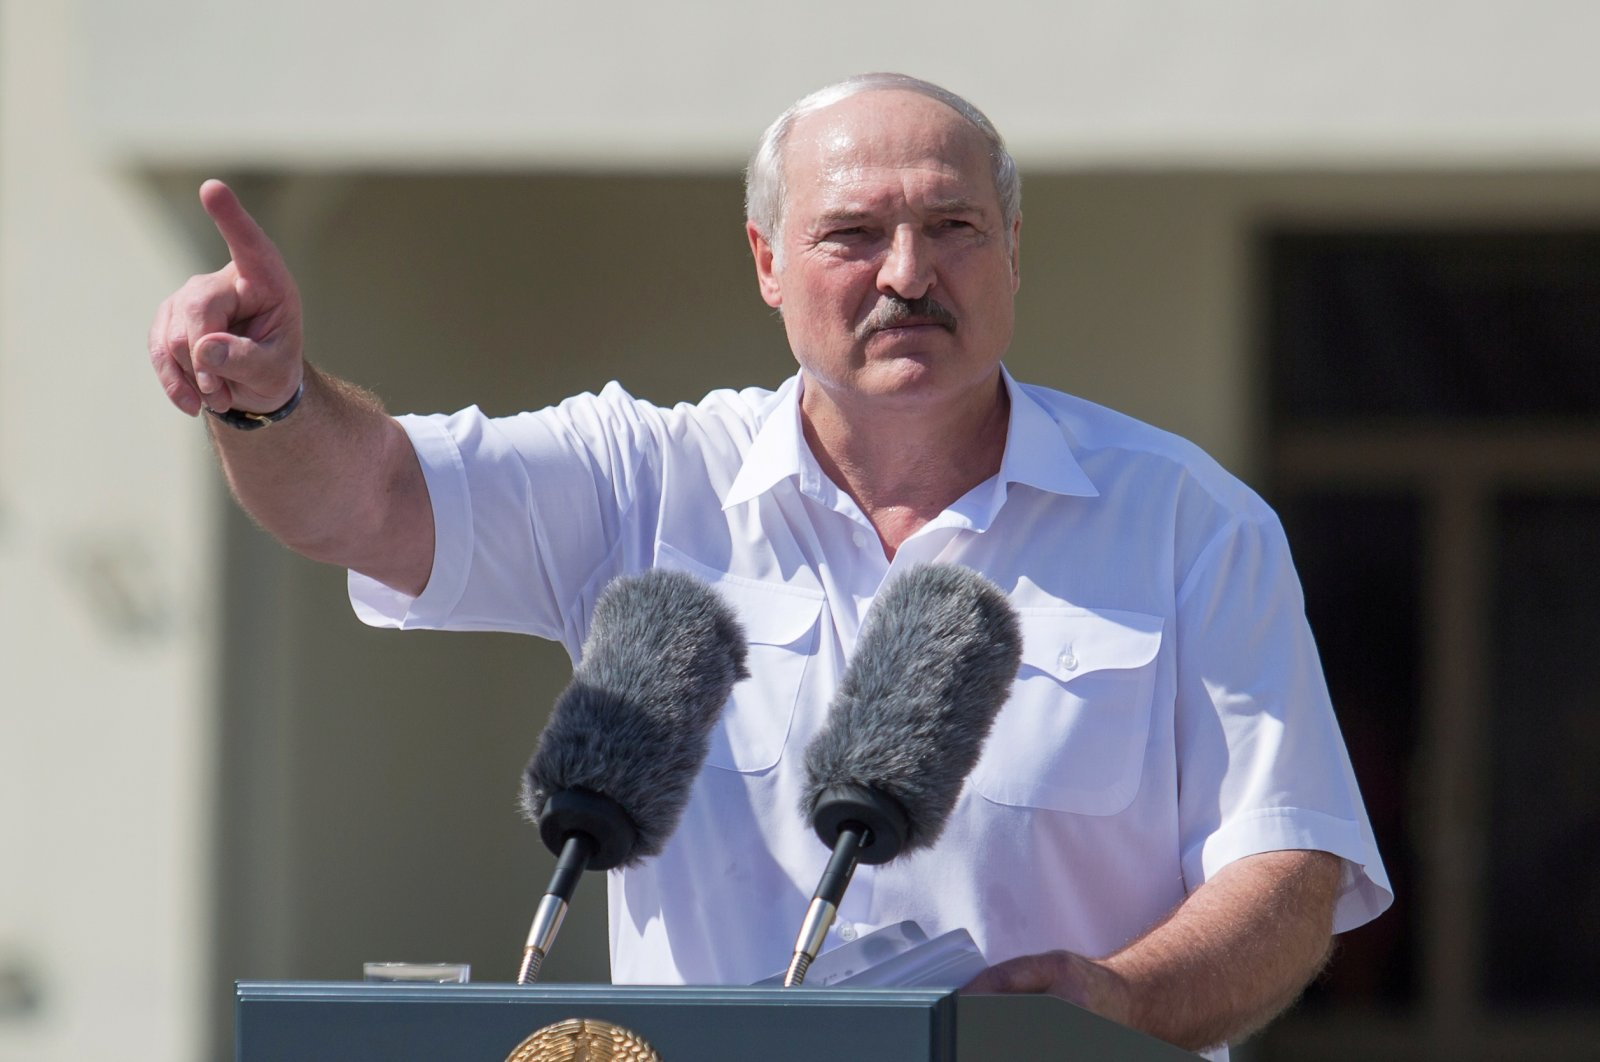 Belarusian President Alexander Lukashenko gestures as he delivers a speech during a rally of his supporters, in the capital Minsk, Aug. 16, 2020. (REUTERS Photo)